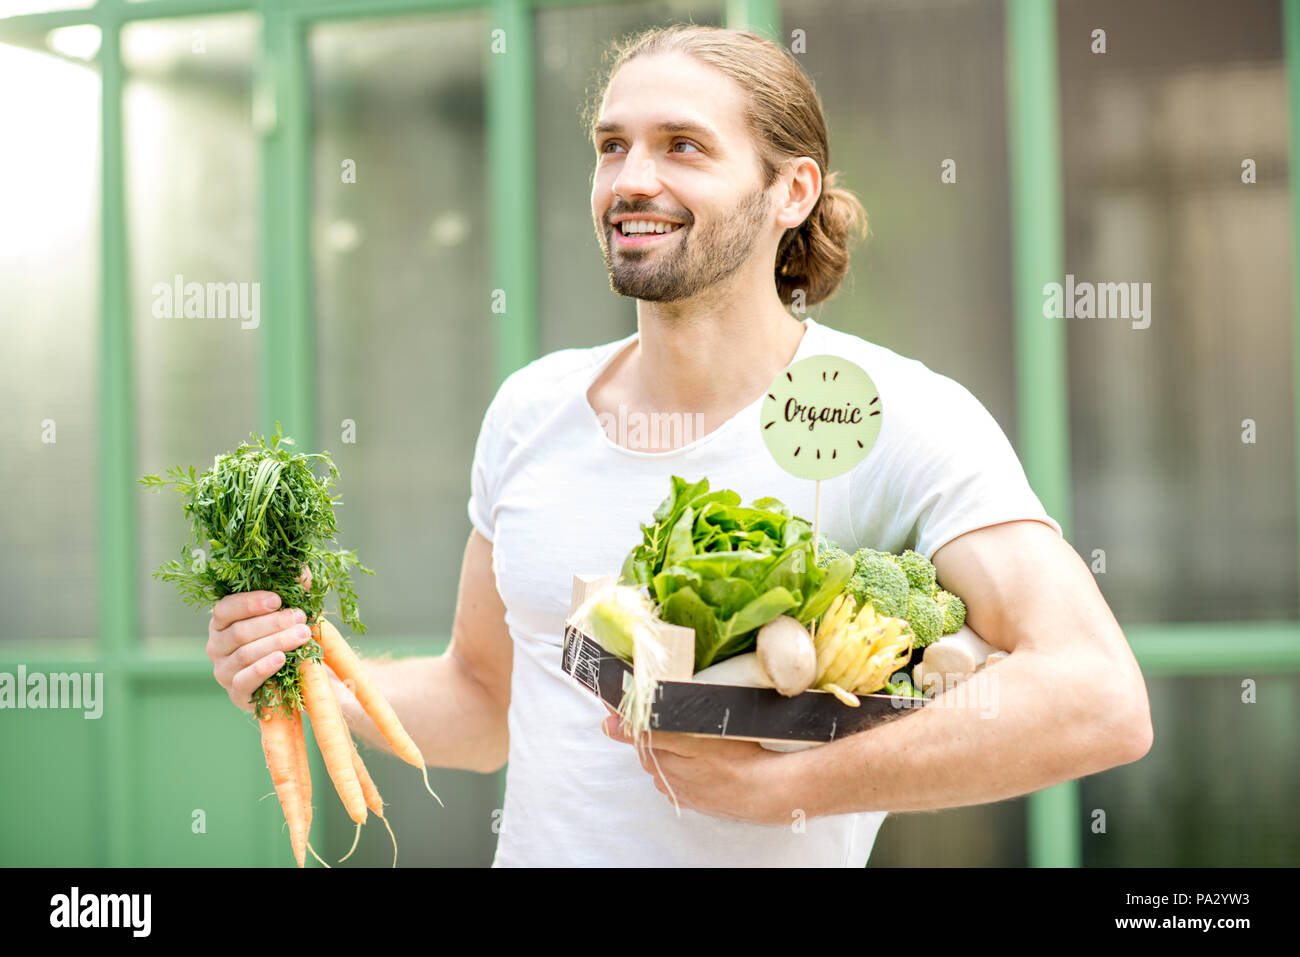 Portrait of a happy vegetarian man holding box full of fresh raw vegetables outdoors on the green background - Stock Image